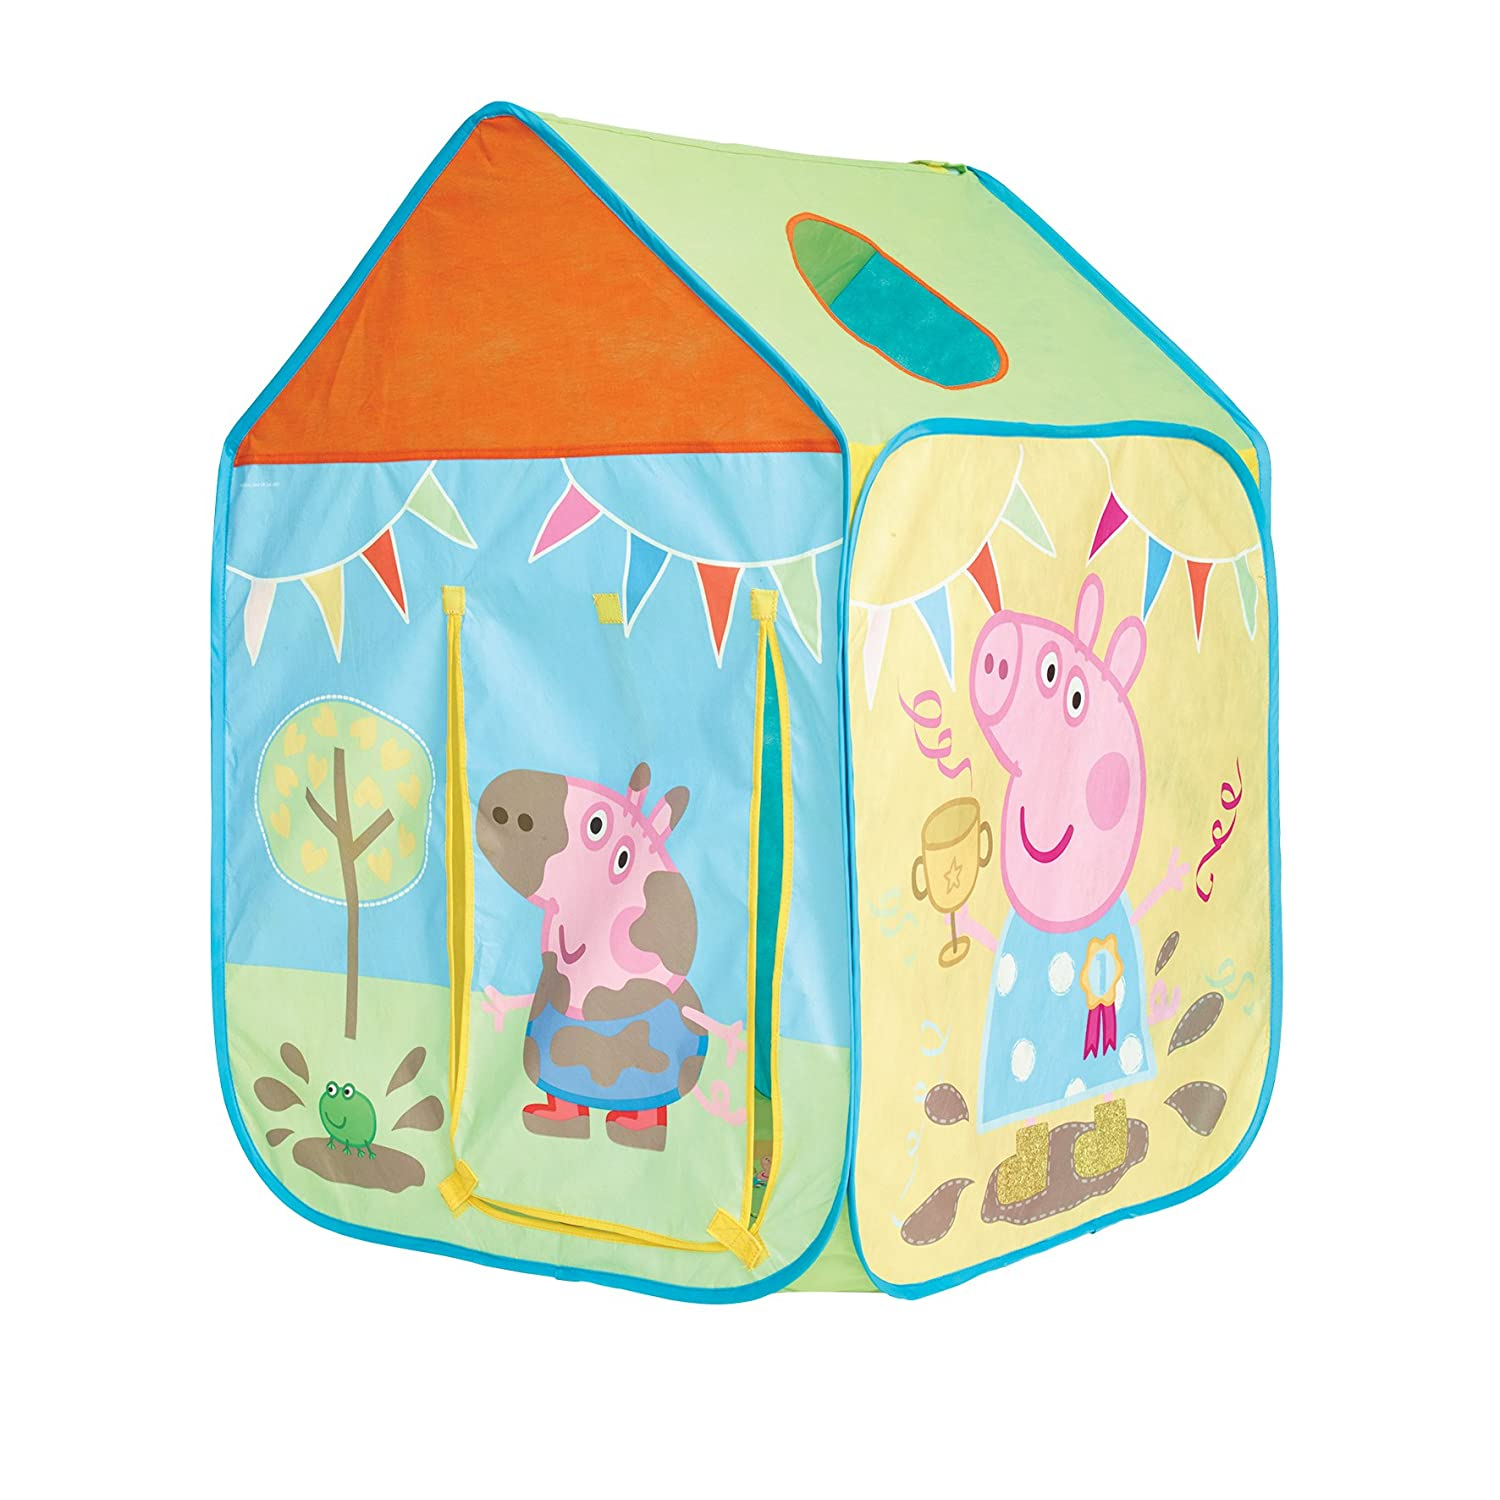 GetGo 156PGG01E Peppa Pig Wendy House Playhouse - Pop Up Role Play Tent Amazon.co.uk Toys u0026 Games  sc 1 st  Amazon UK & GetGo 156PGG01E Peppa Pig Wendy House Playhouse - Pop Up Role Play ...